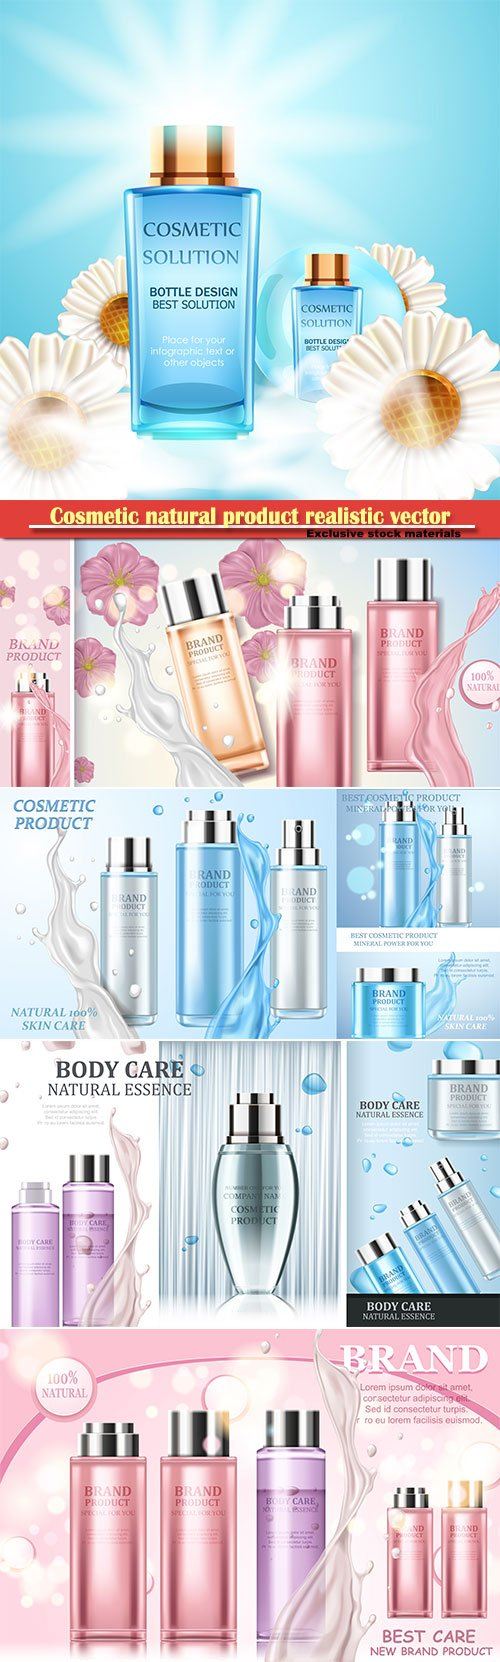 Cosmetic natural product realistic vector illustration